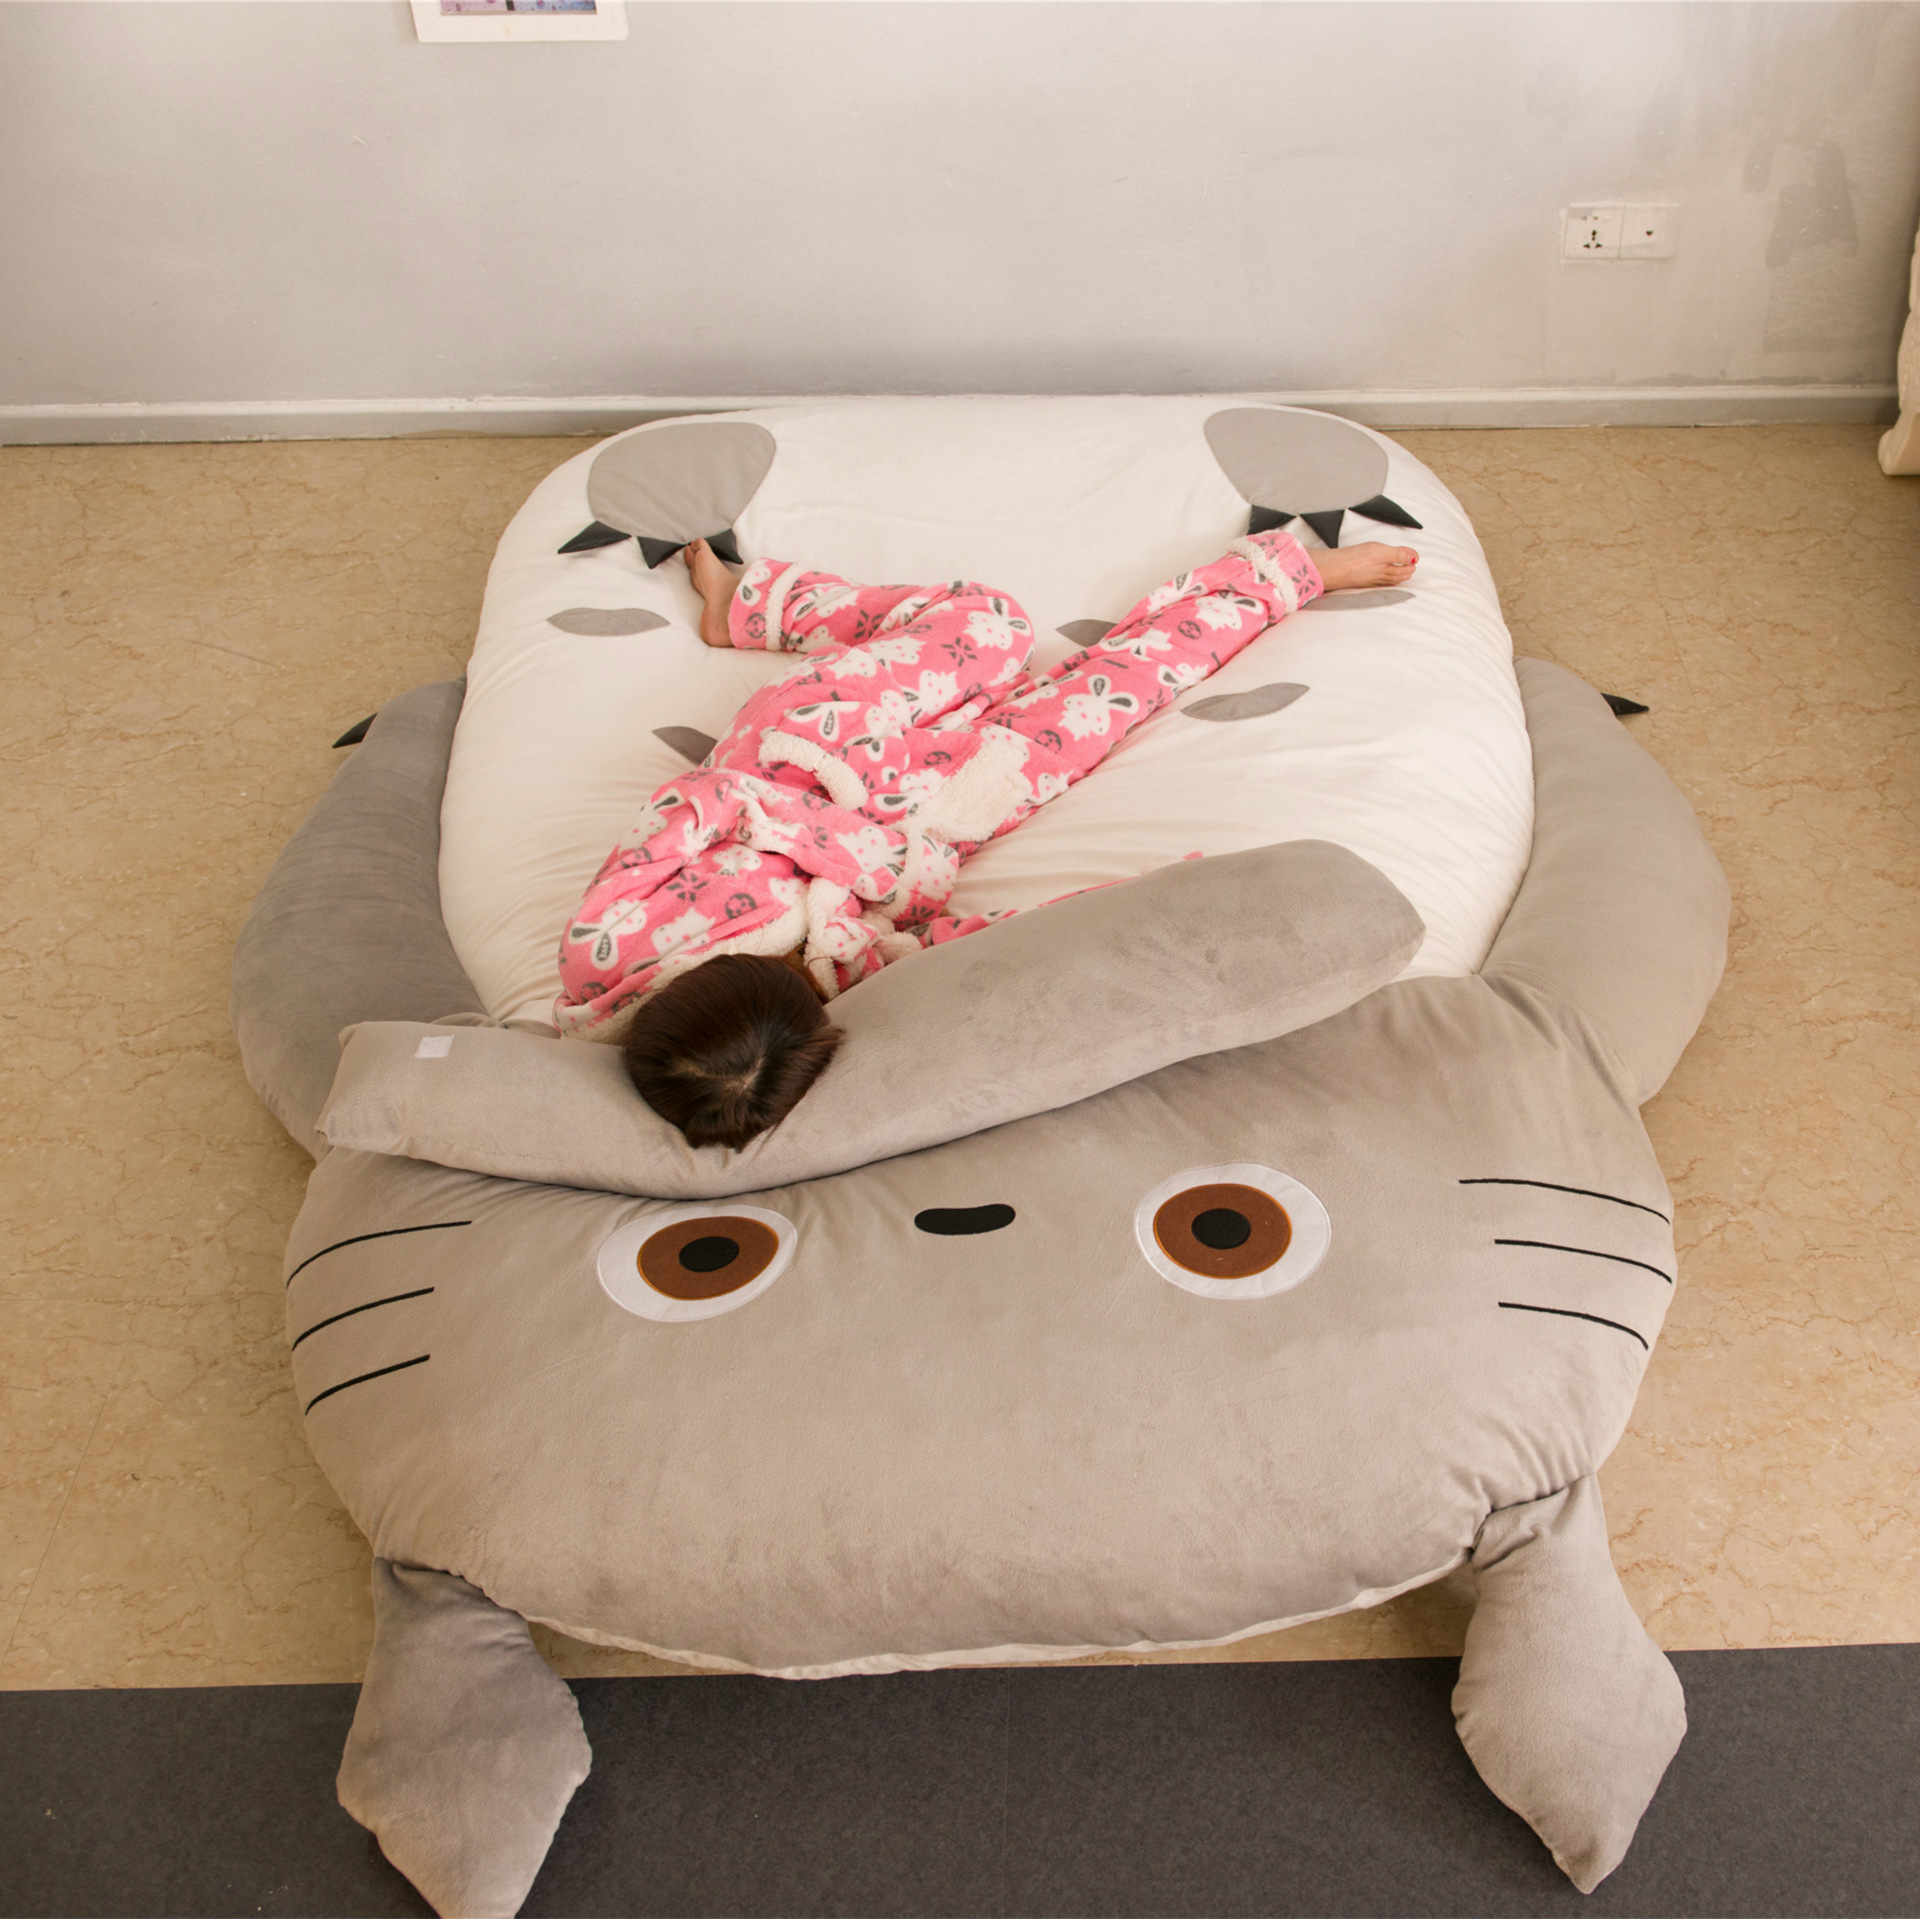 Aliexpress Buy mattresses folding couch bed Totoro mattress